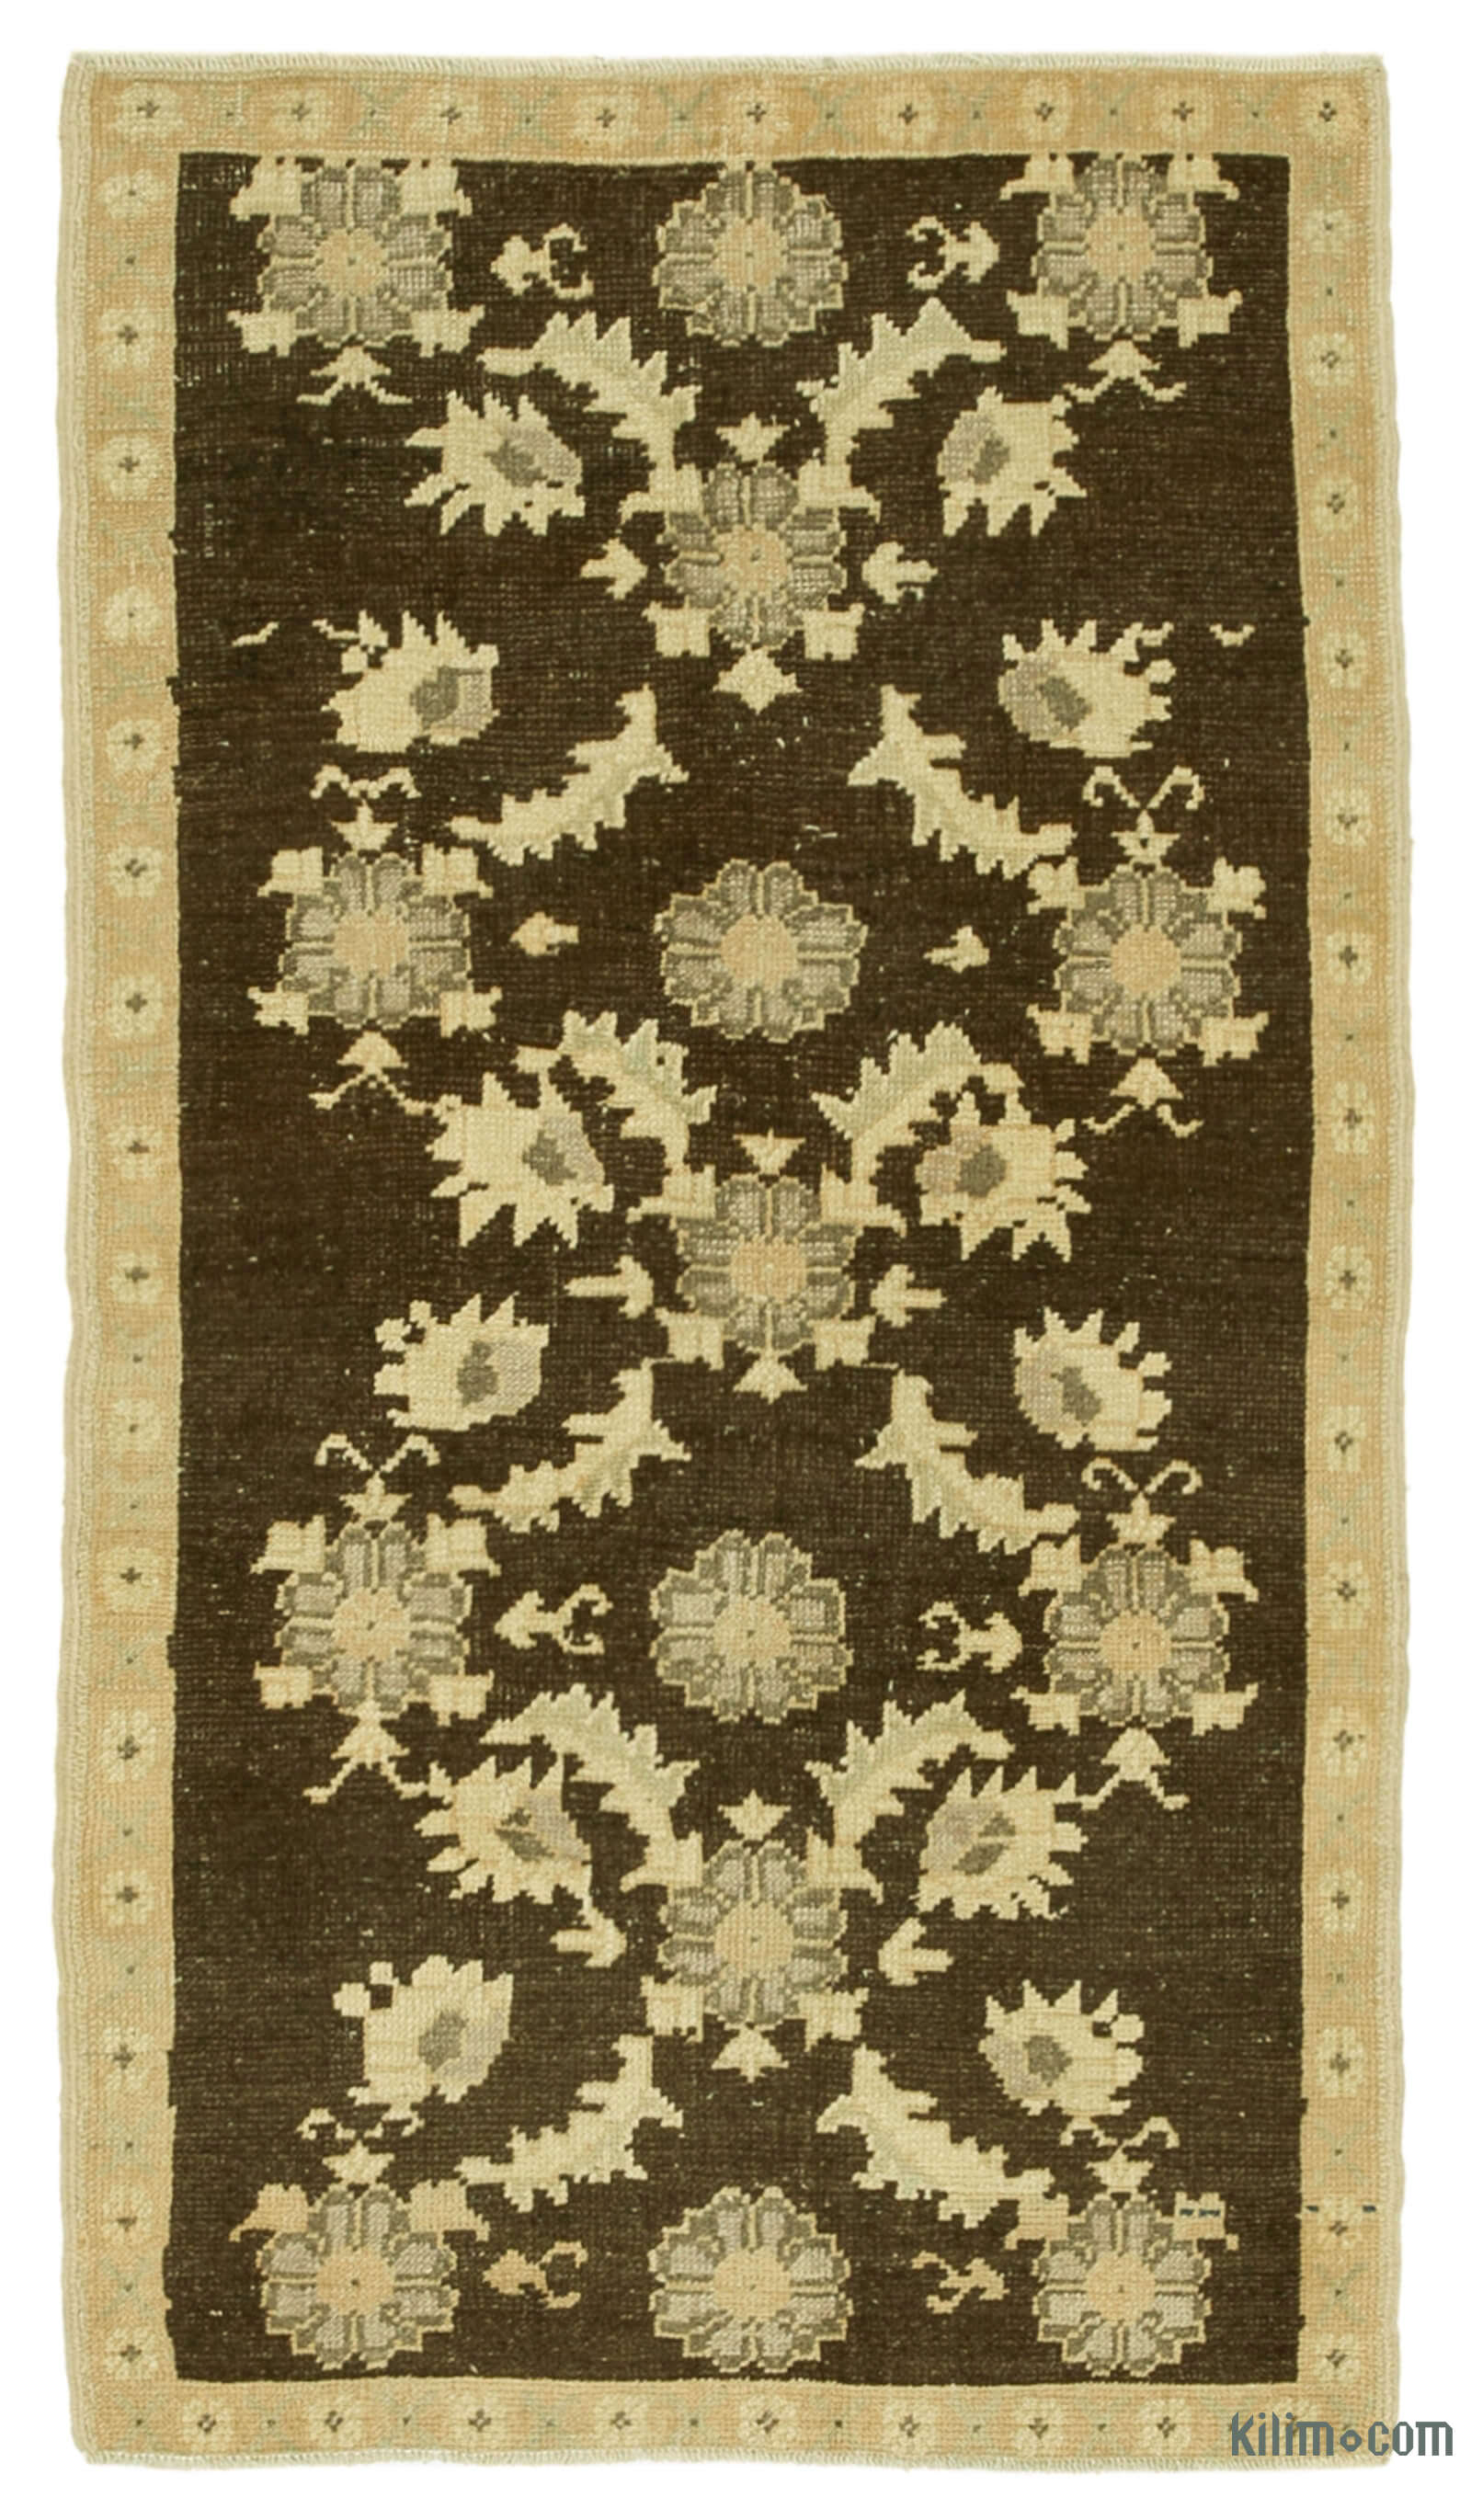 Beige Brown All Wool Hand Knotted Vintage Area Rug